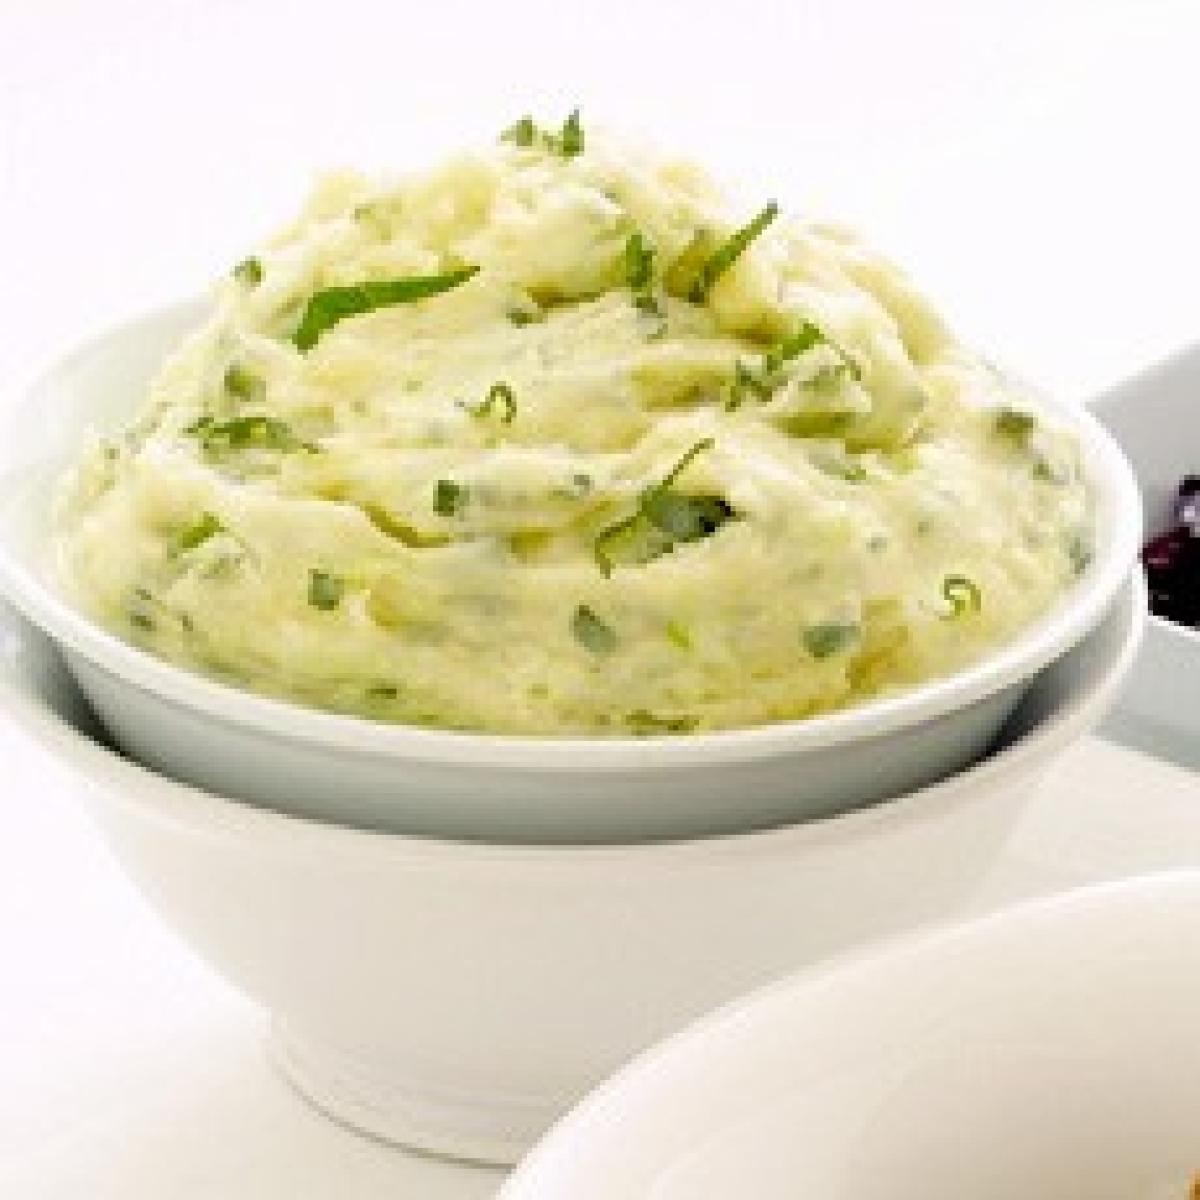 A picture of Delia's Colcannon Potatoes recipe